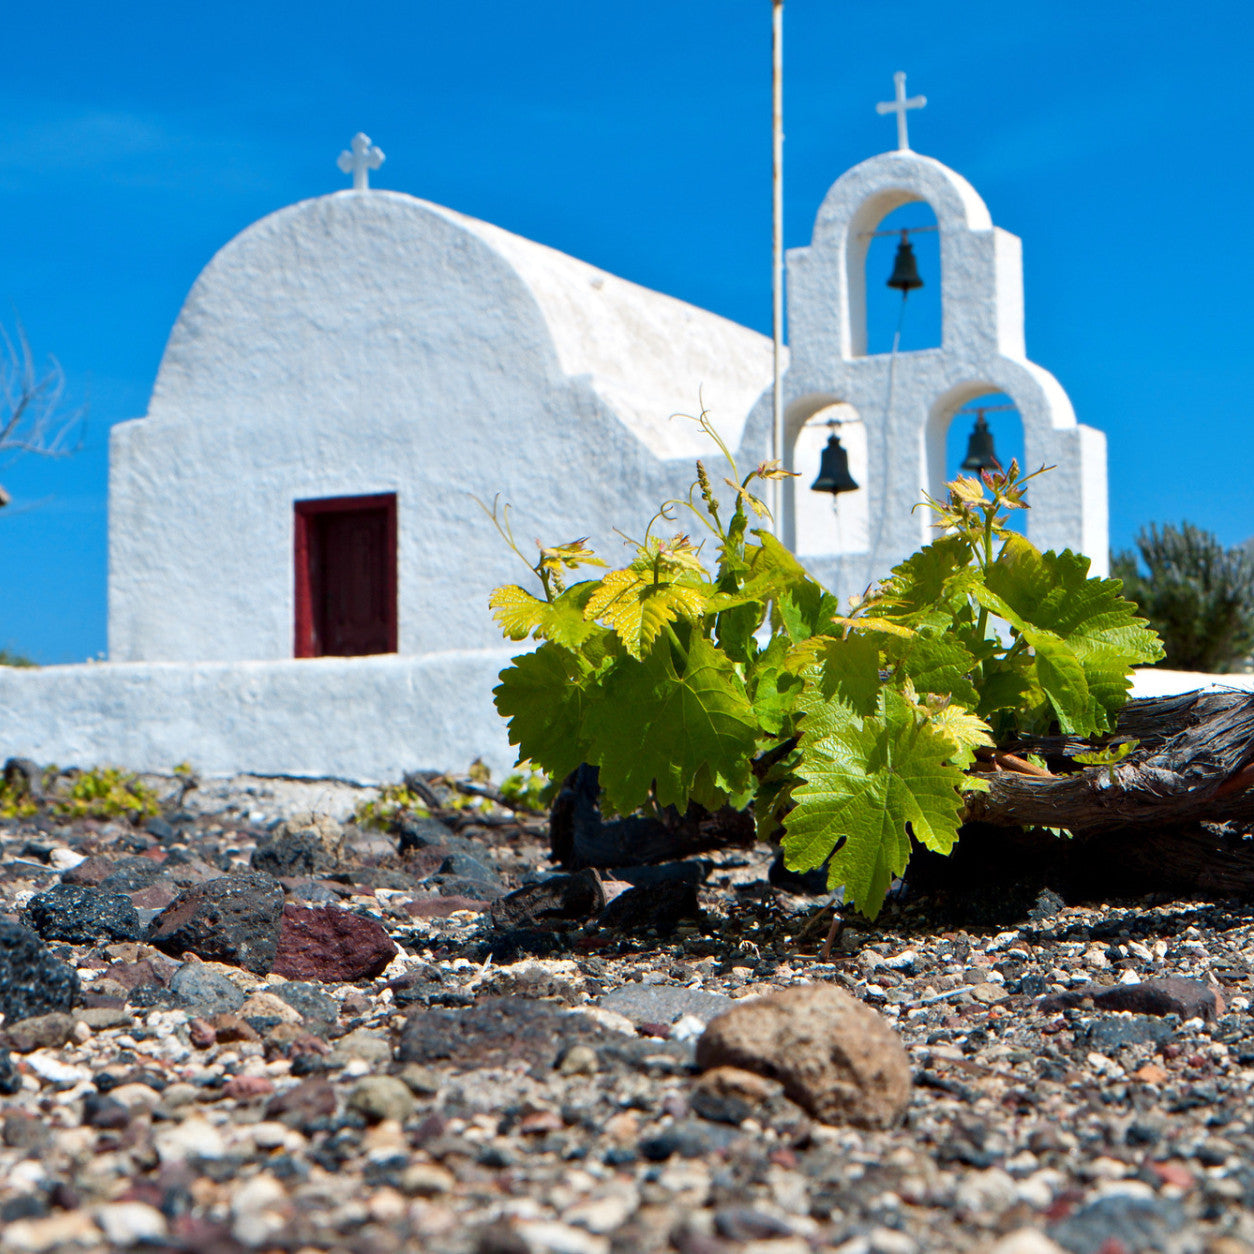 Wines of Spain, Portugal & Greece